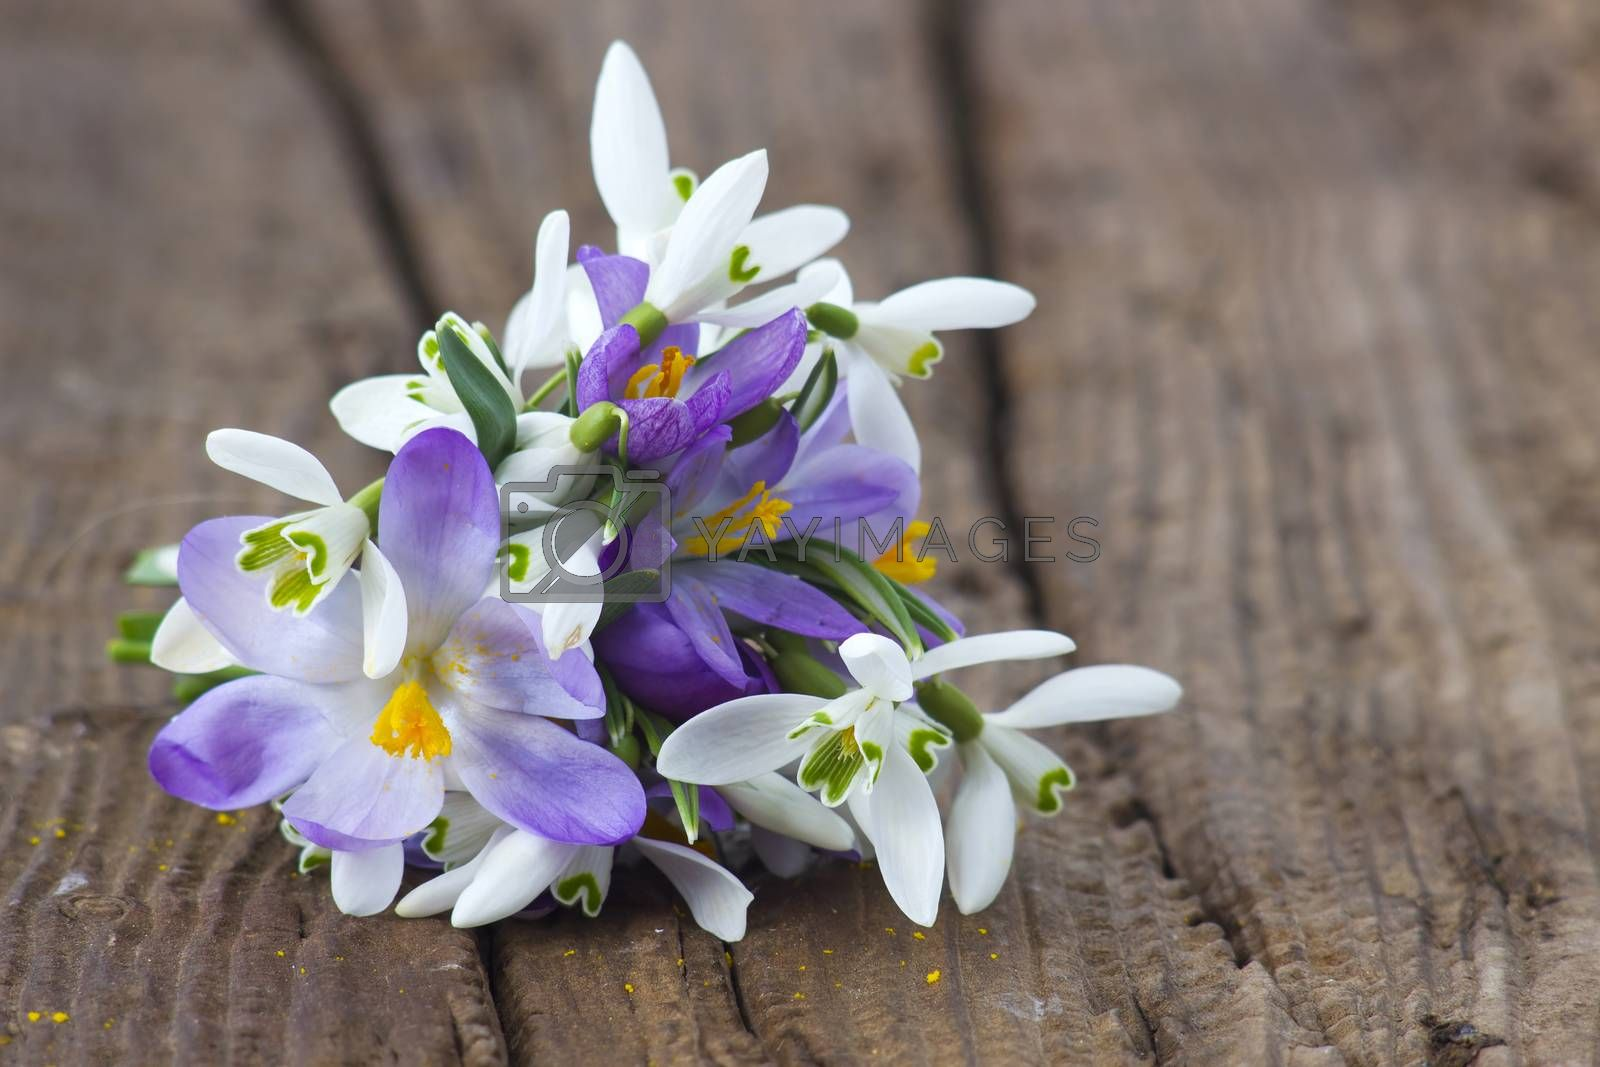 Bunch of crocus and snowdrops on the wooden table.